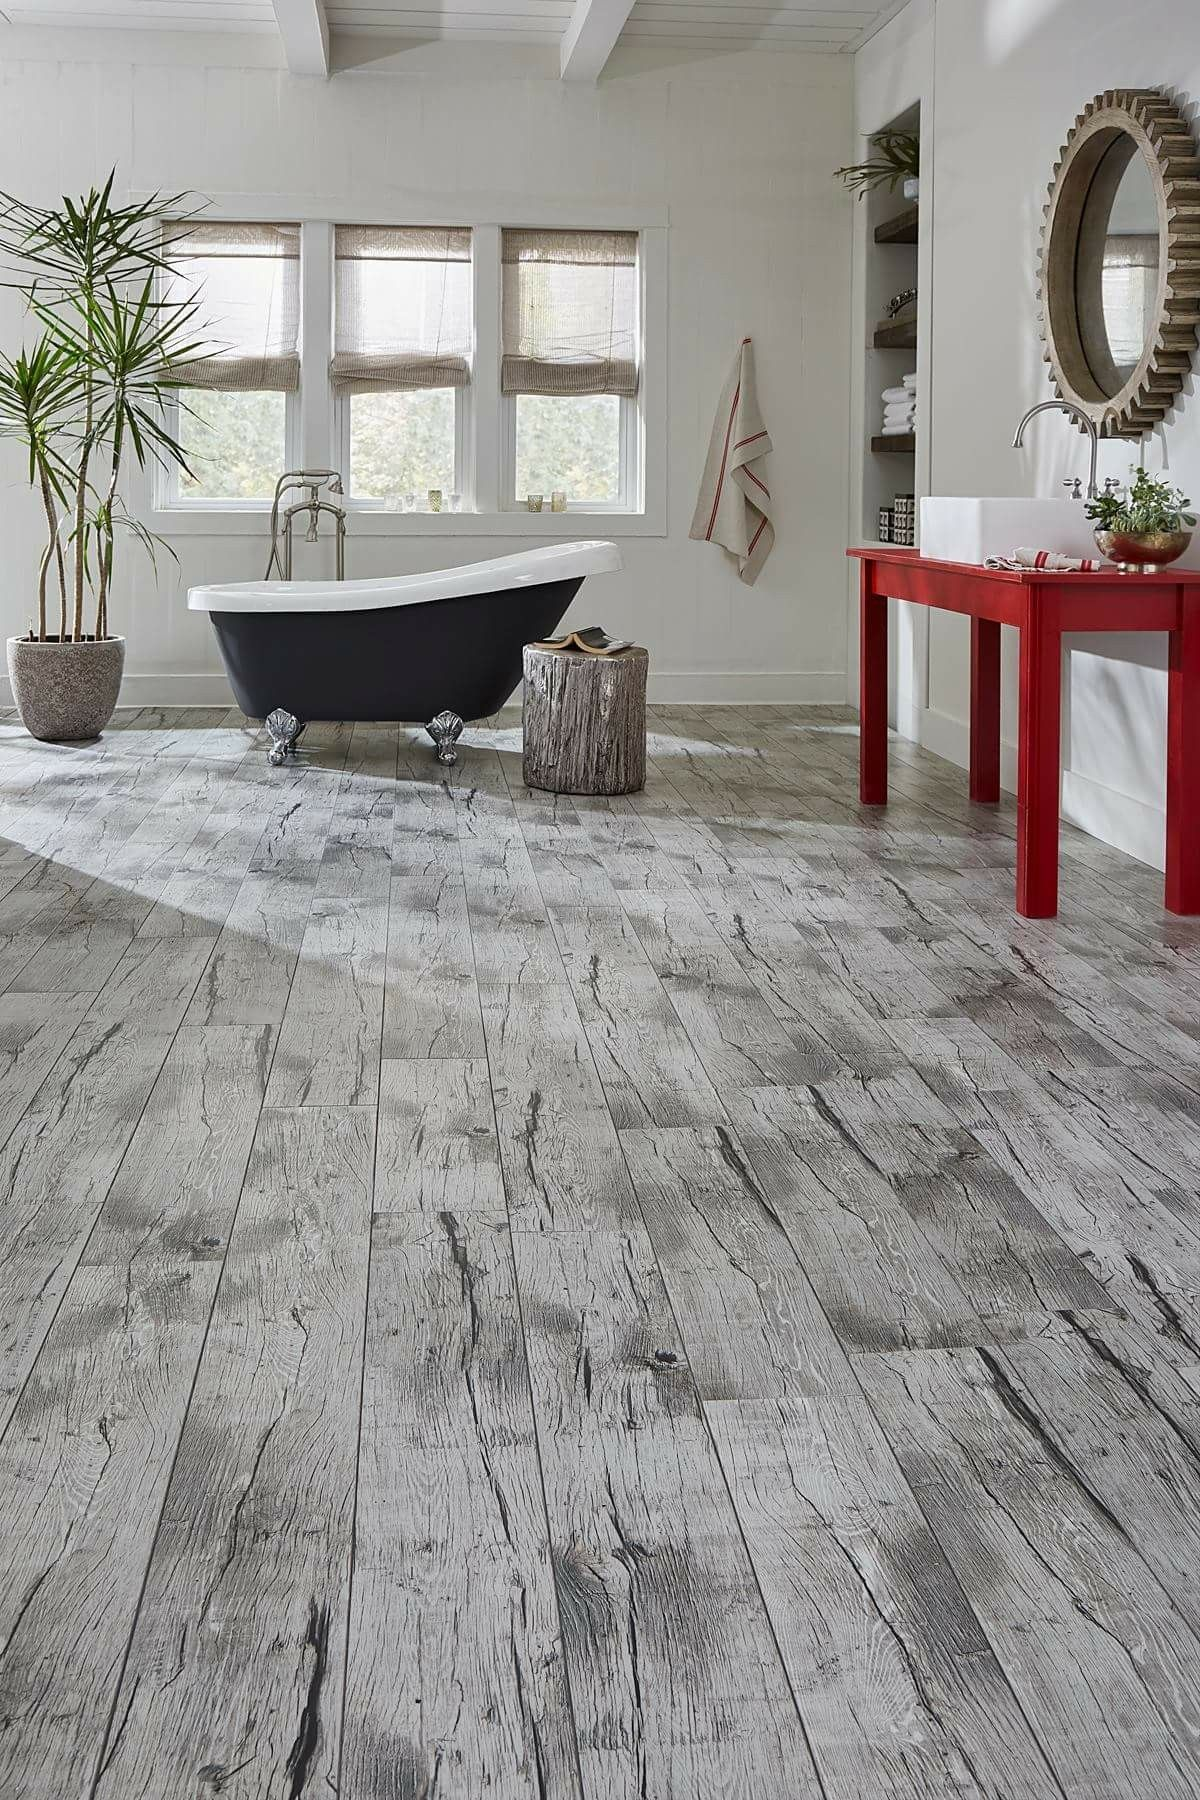 pinkristi neal on for the home  waterproof laminate